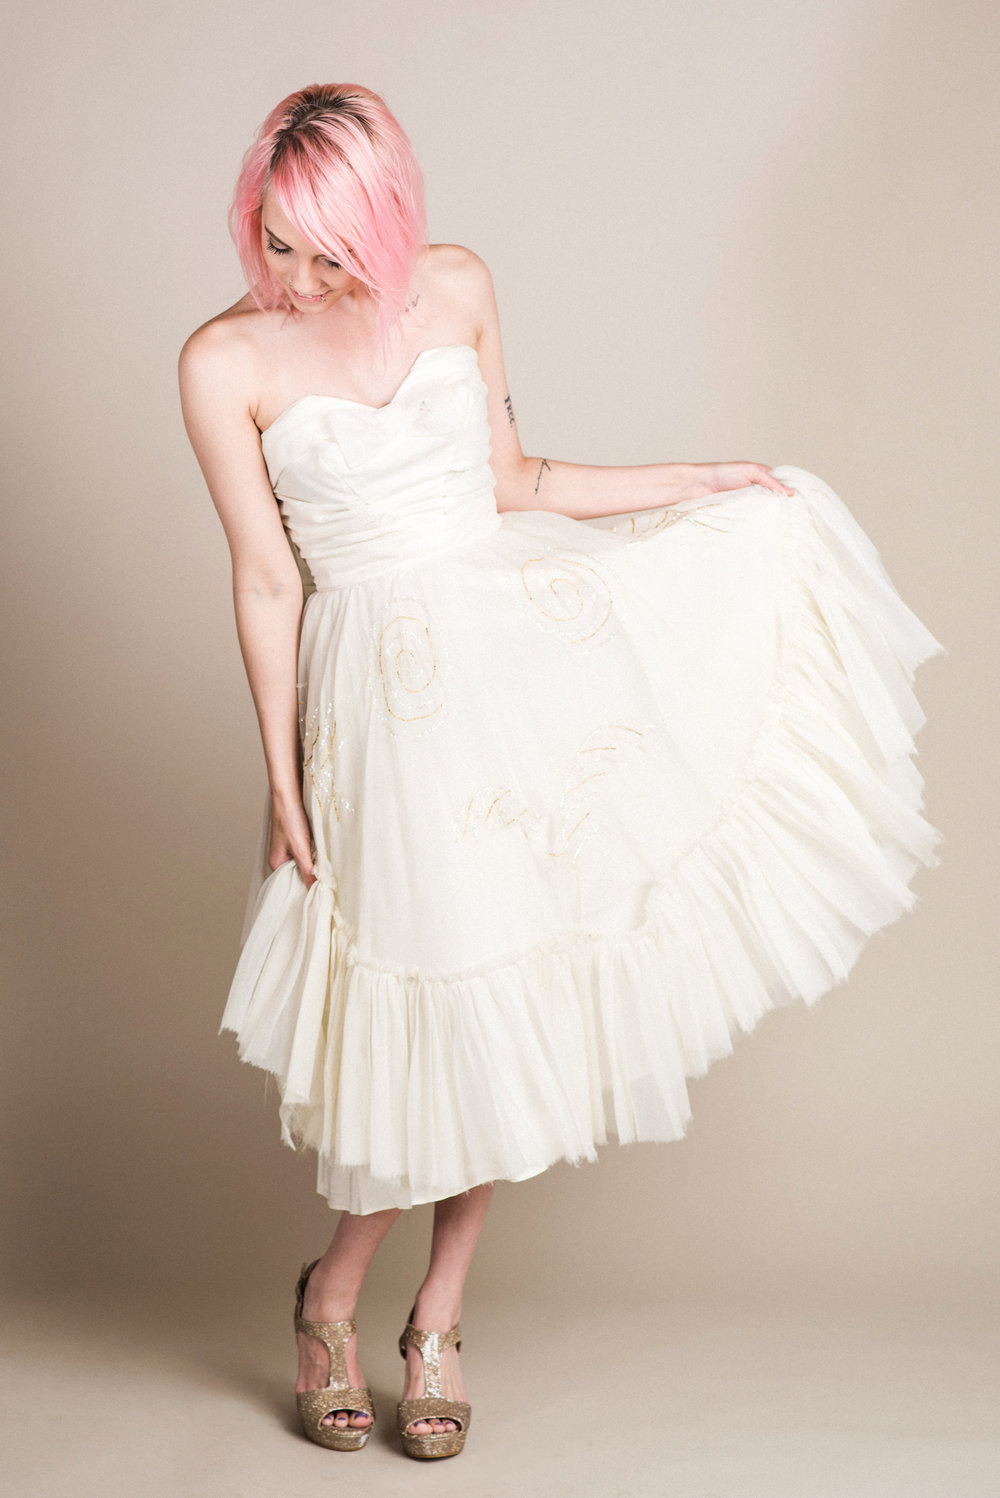 Vintage Beaded White Dress (XS) | Modeled by Laura